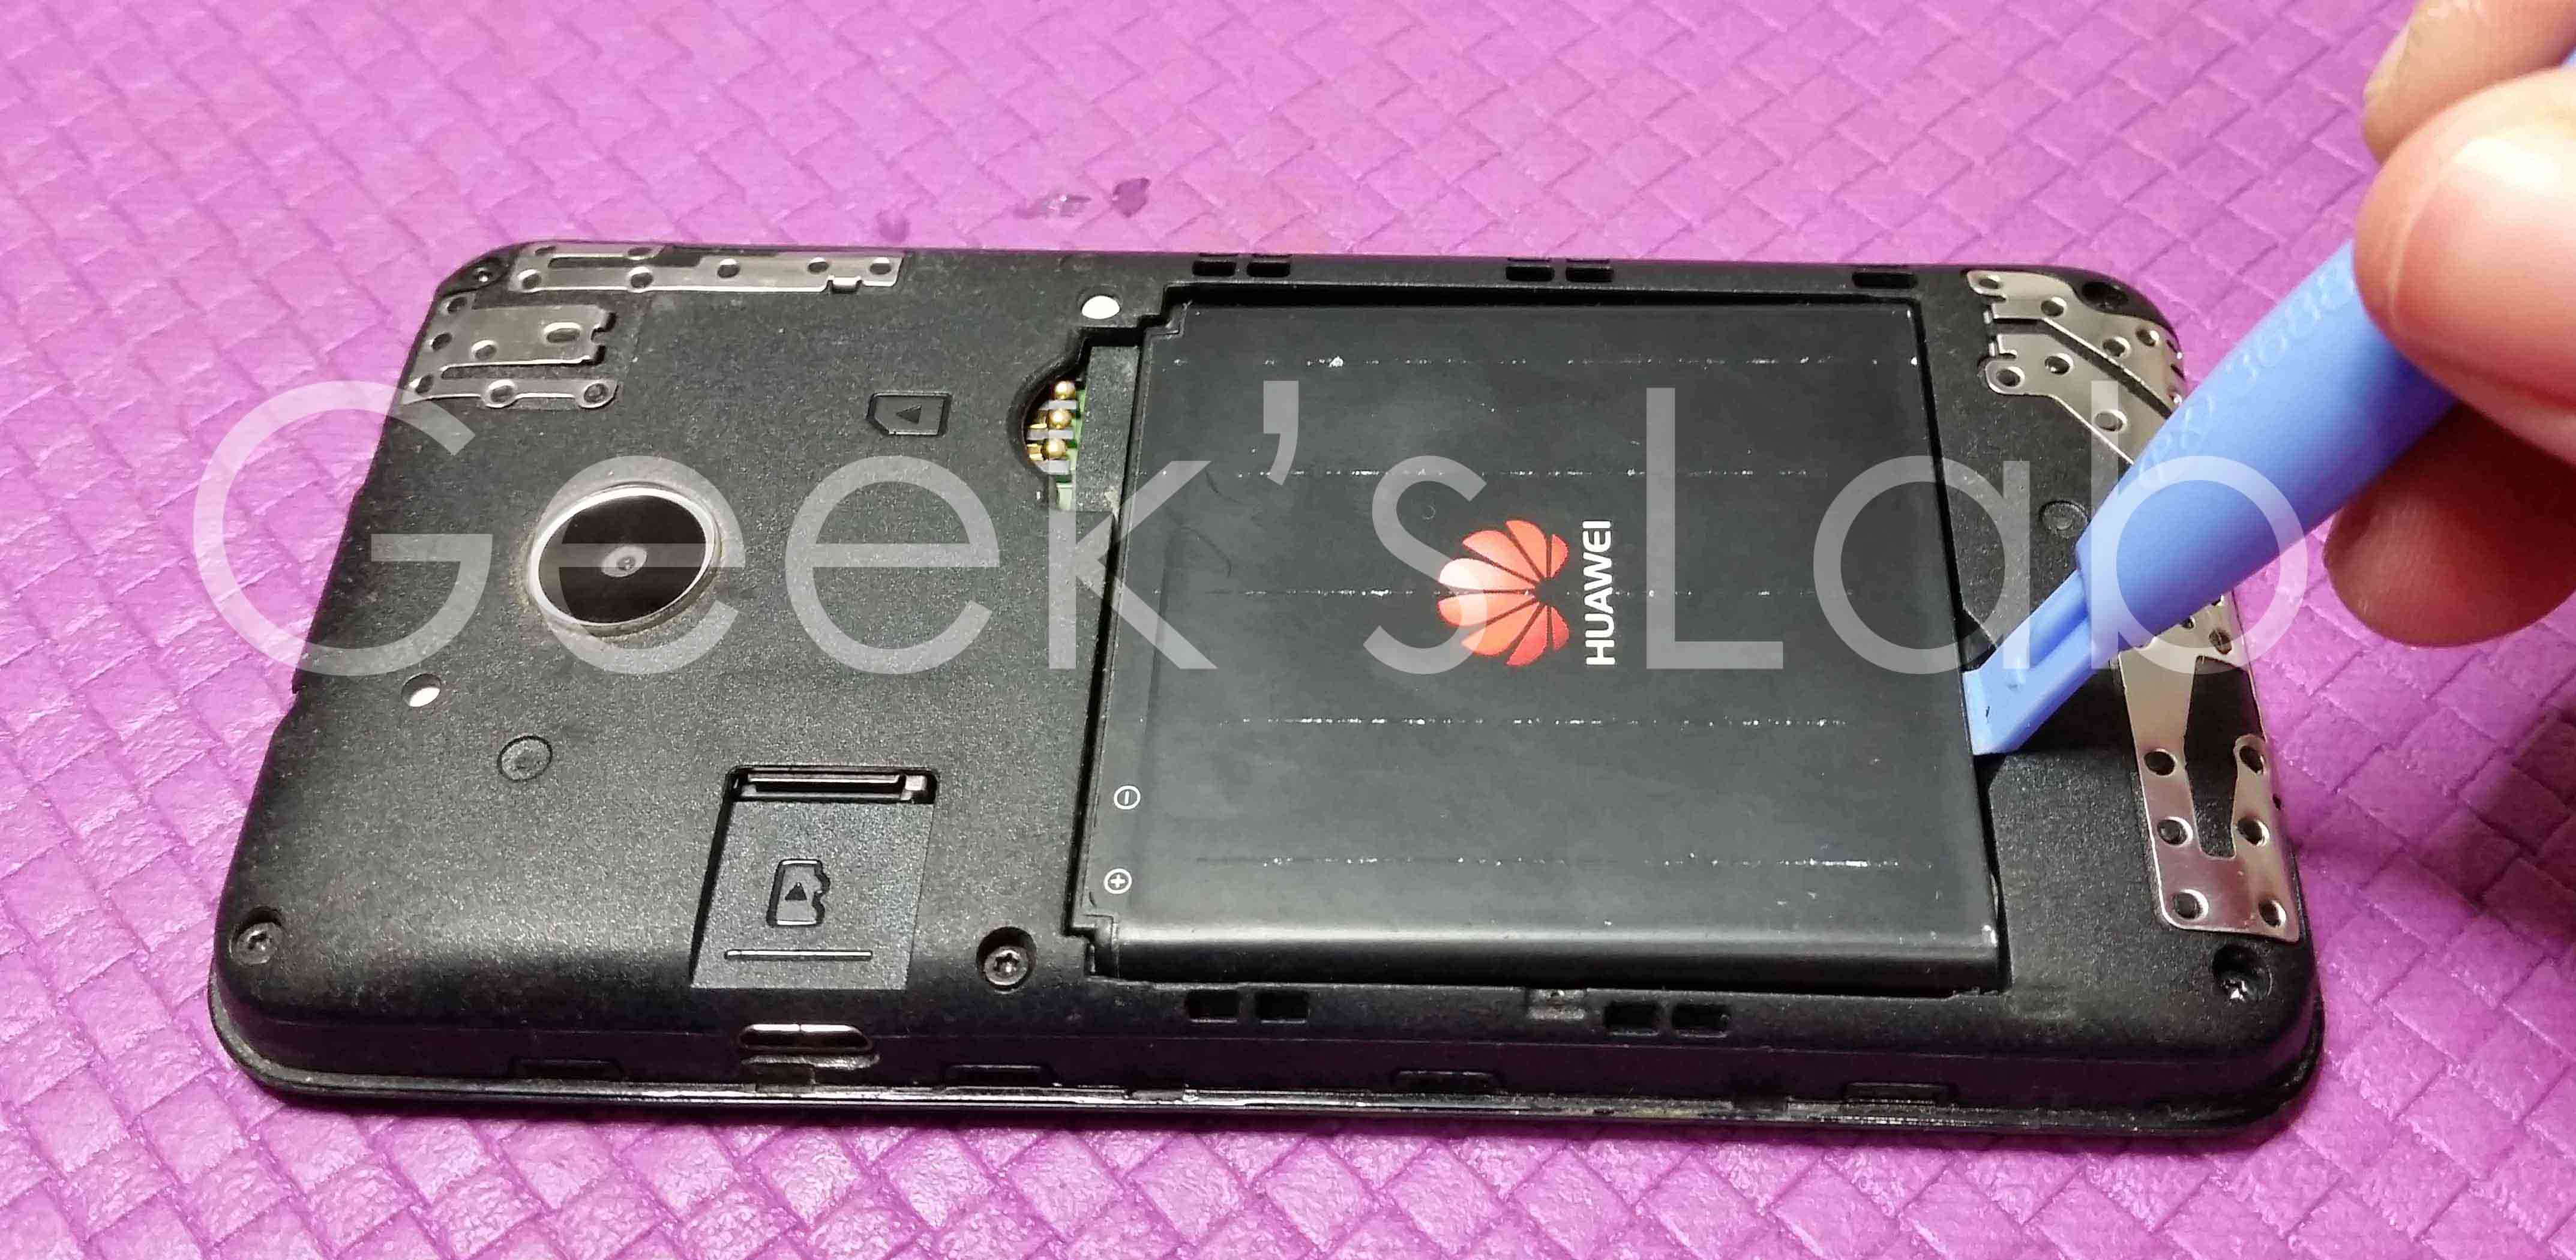 Huawei Ascend Y330 Touch screen replacement | Geek's Lab